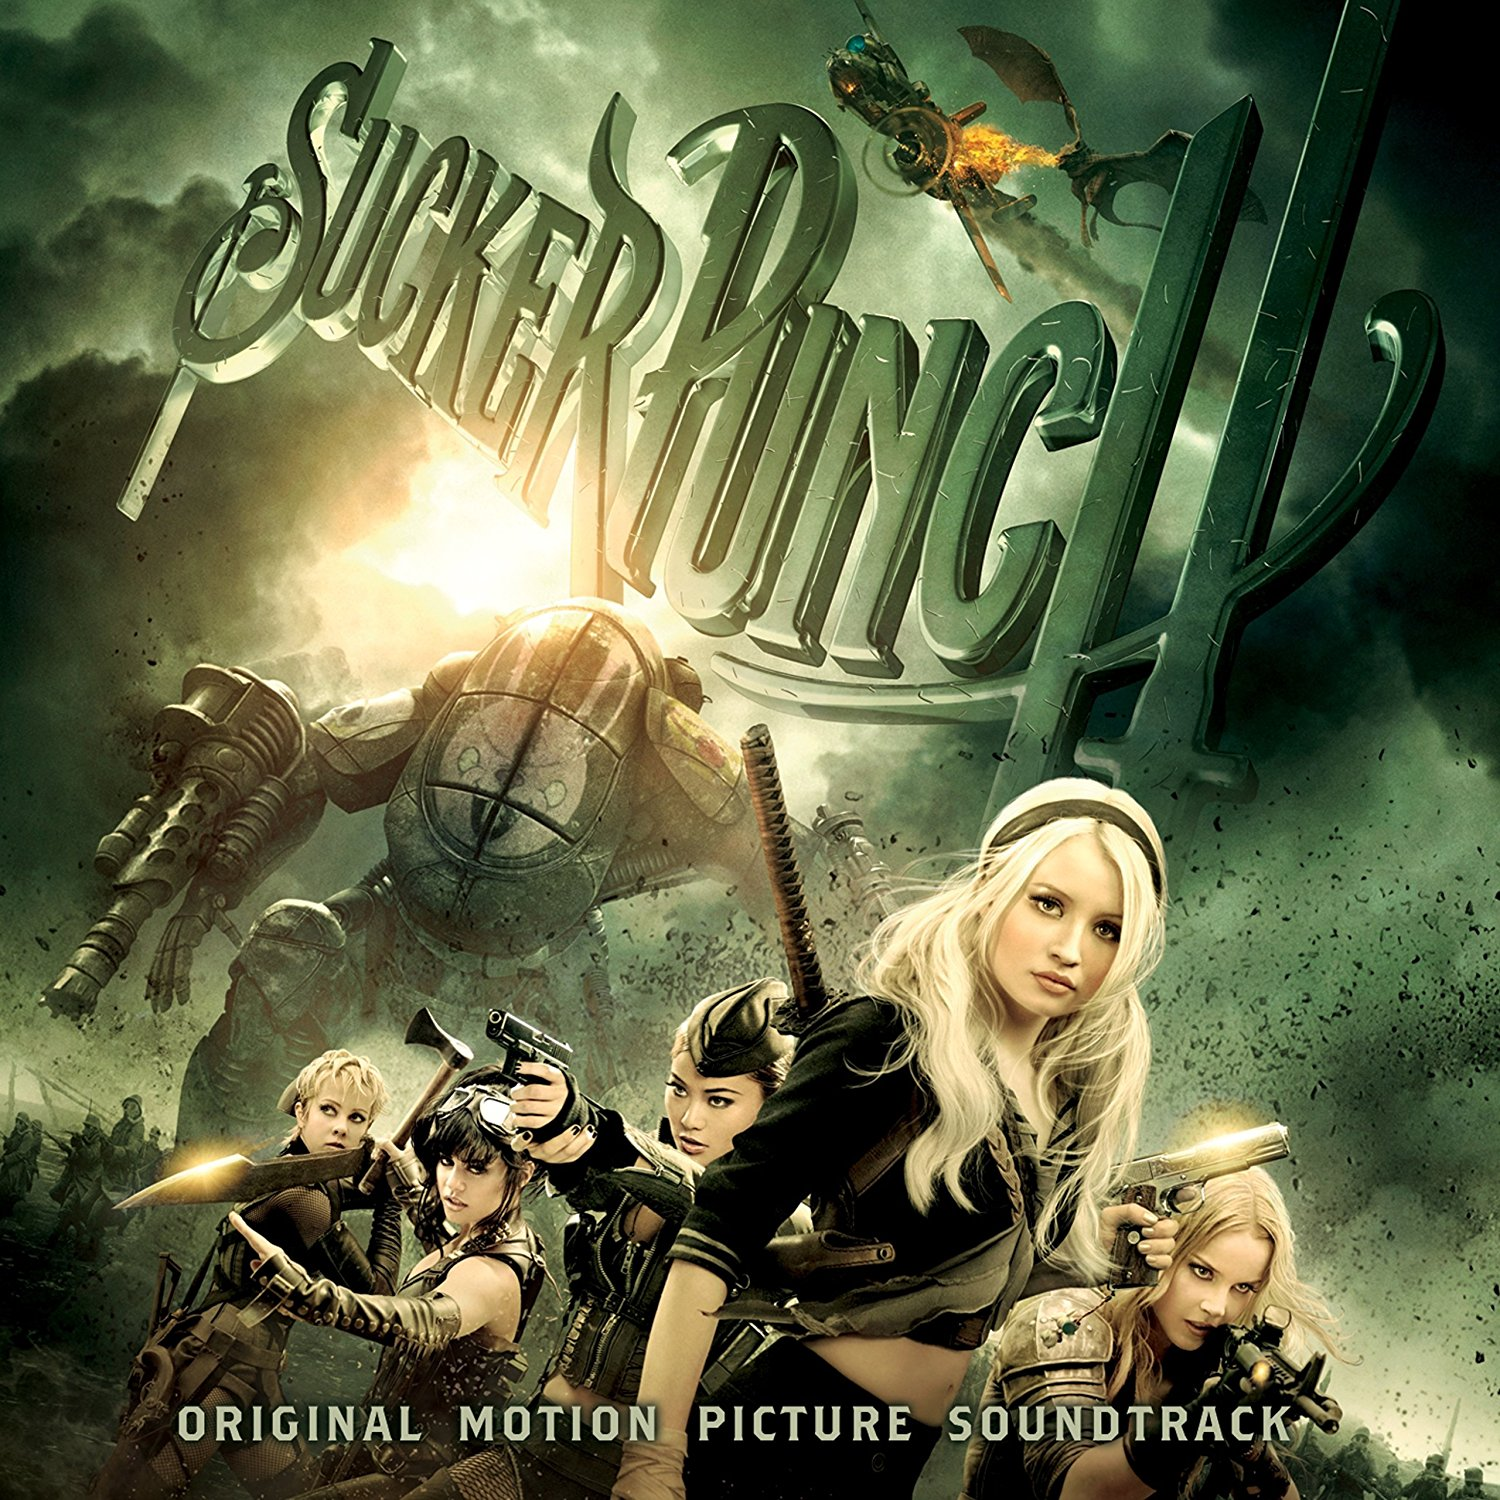 Emily - [10's] Emily Browning - Sweet Dreams (2011) OST%20-%20Sucker%20Punch